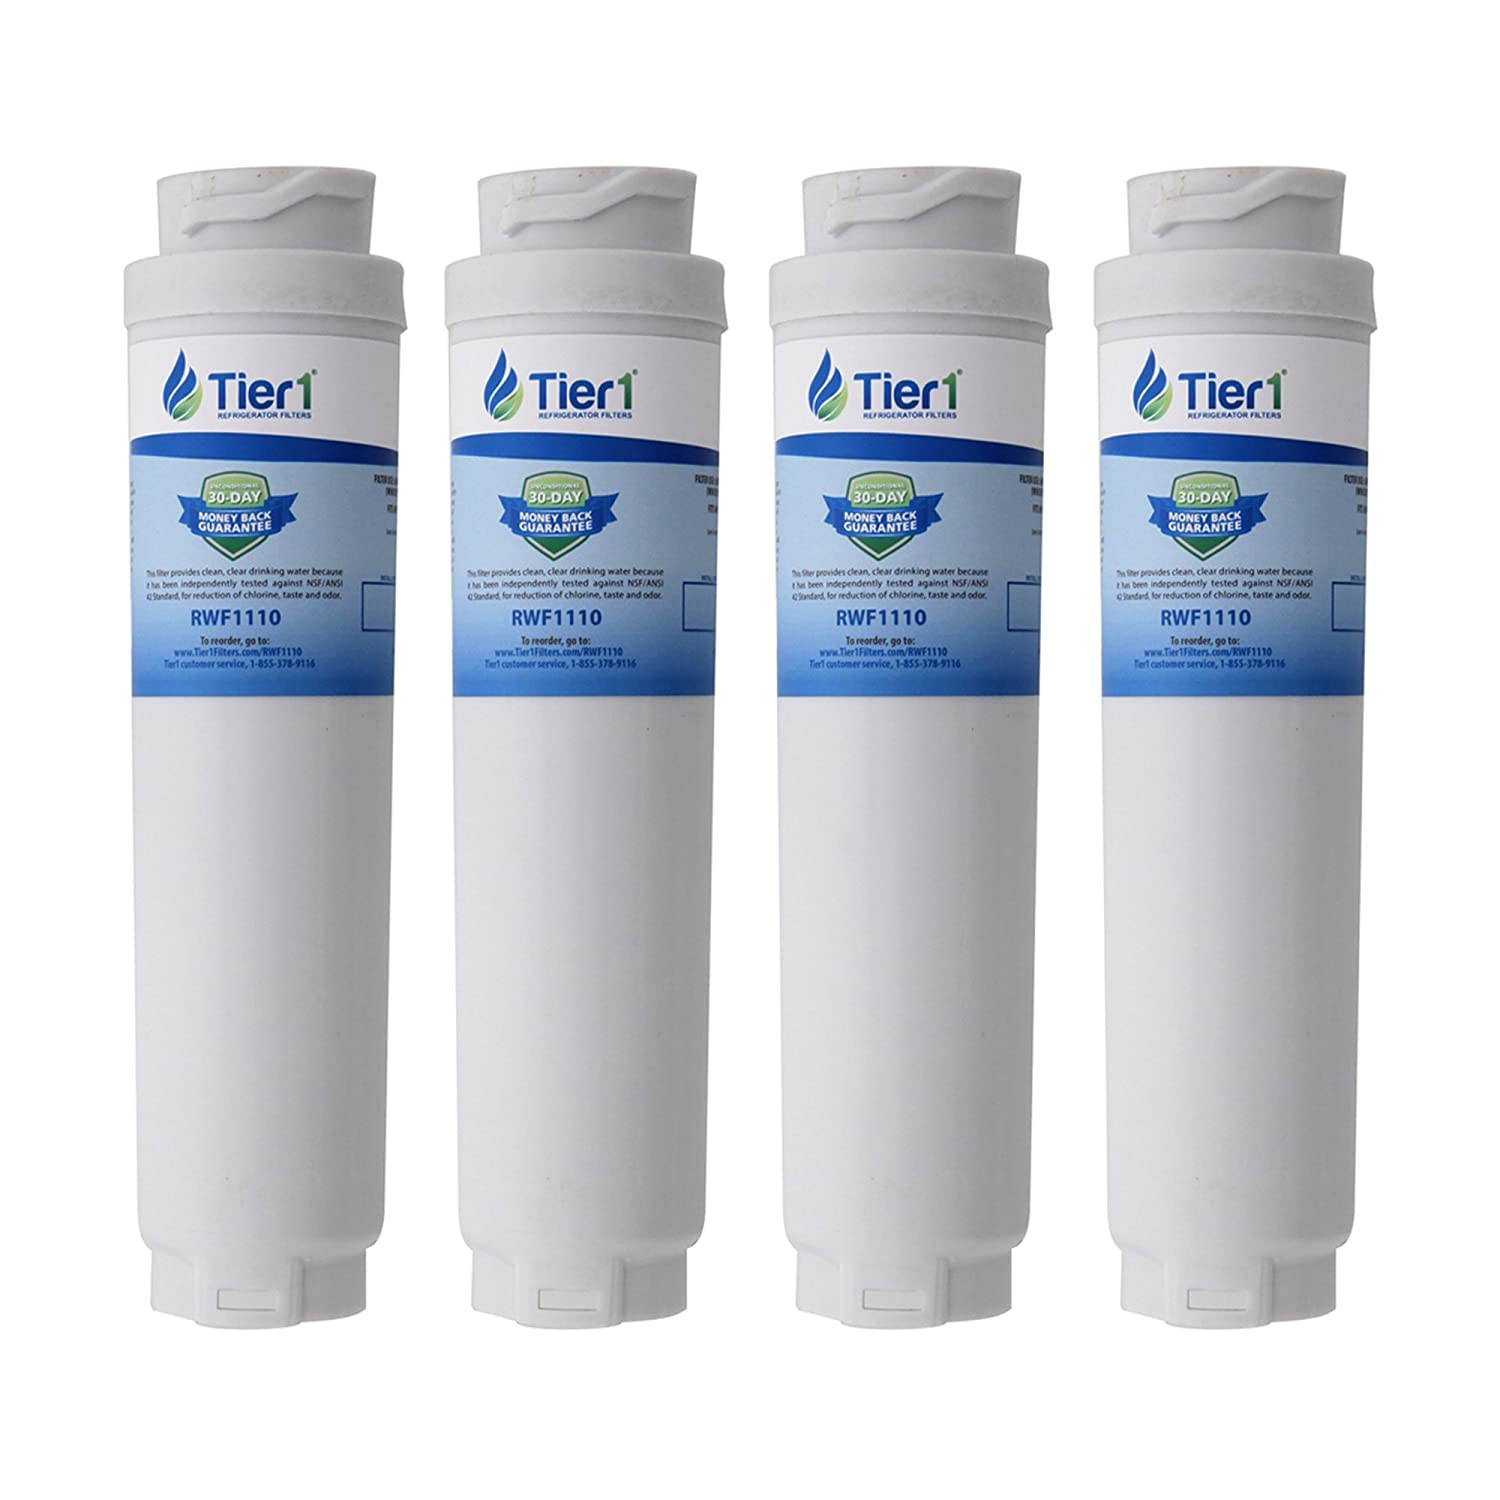 Tier1 Replacement for Bosch 644845 REPLFLTR10 UltraClarity, 644845, 9000194412, 740570, 9000077095, 9000193914 Refrigerator Water Filter 4 Pack